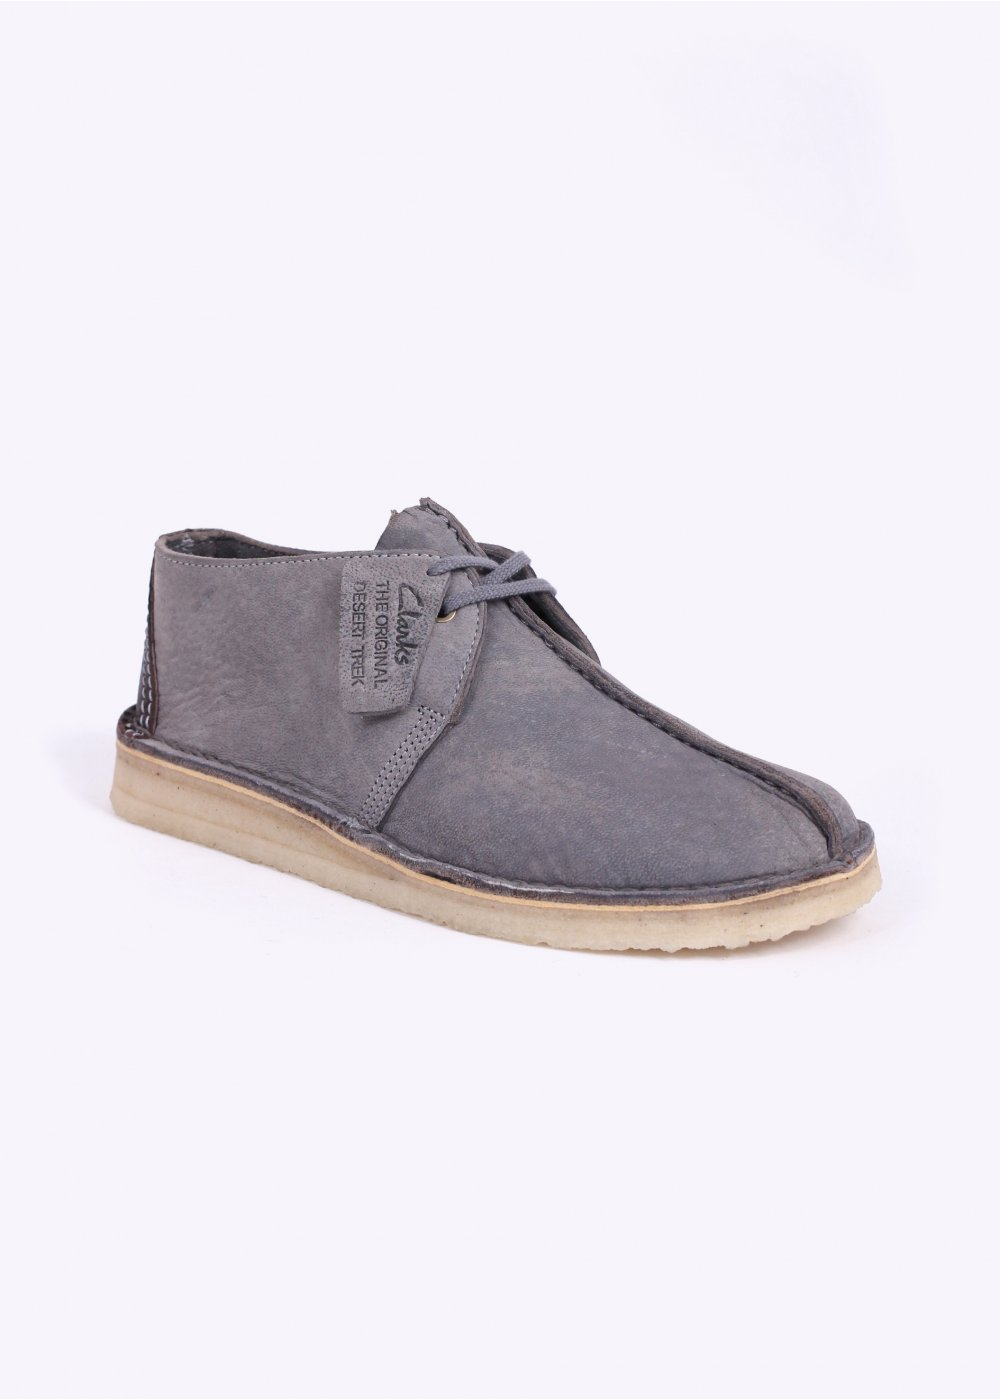 Clarks Shoes Desert Trek Mens